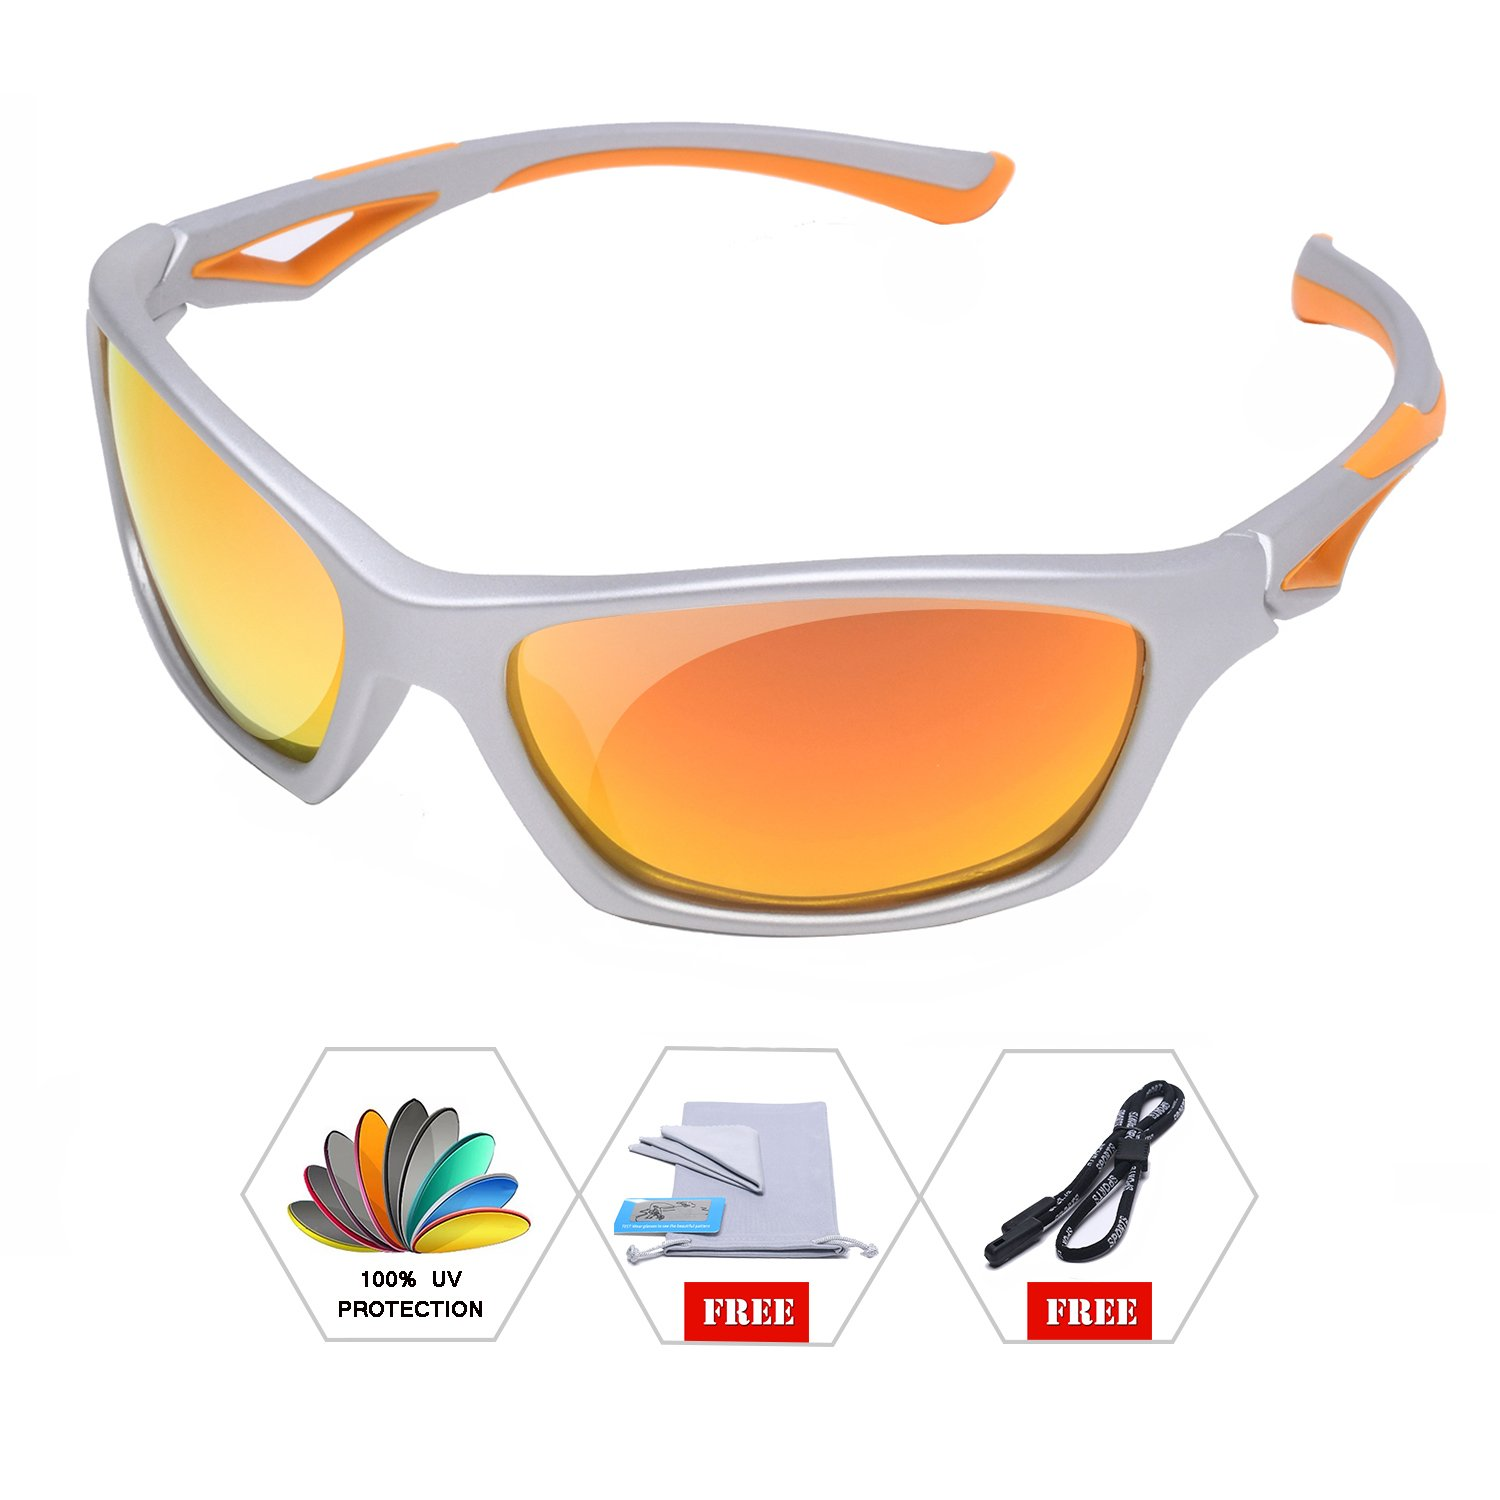 AODUOKE Sports Polarized Sunglasses For Kids Children Boys And Girls Shades With Strap TR90 Unbreakable Frame (Grey/Orange | Orange Lens)